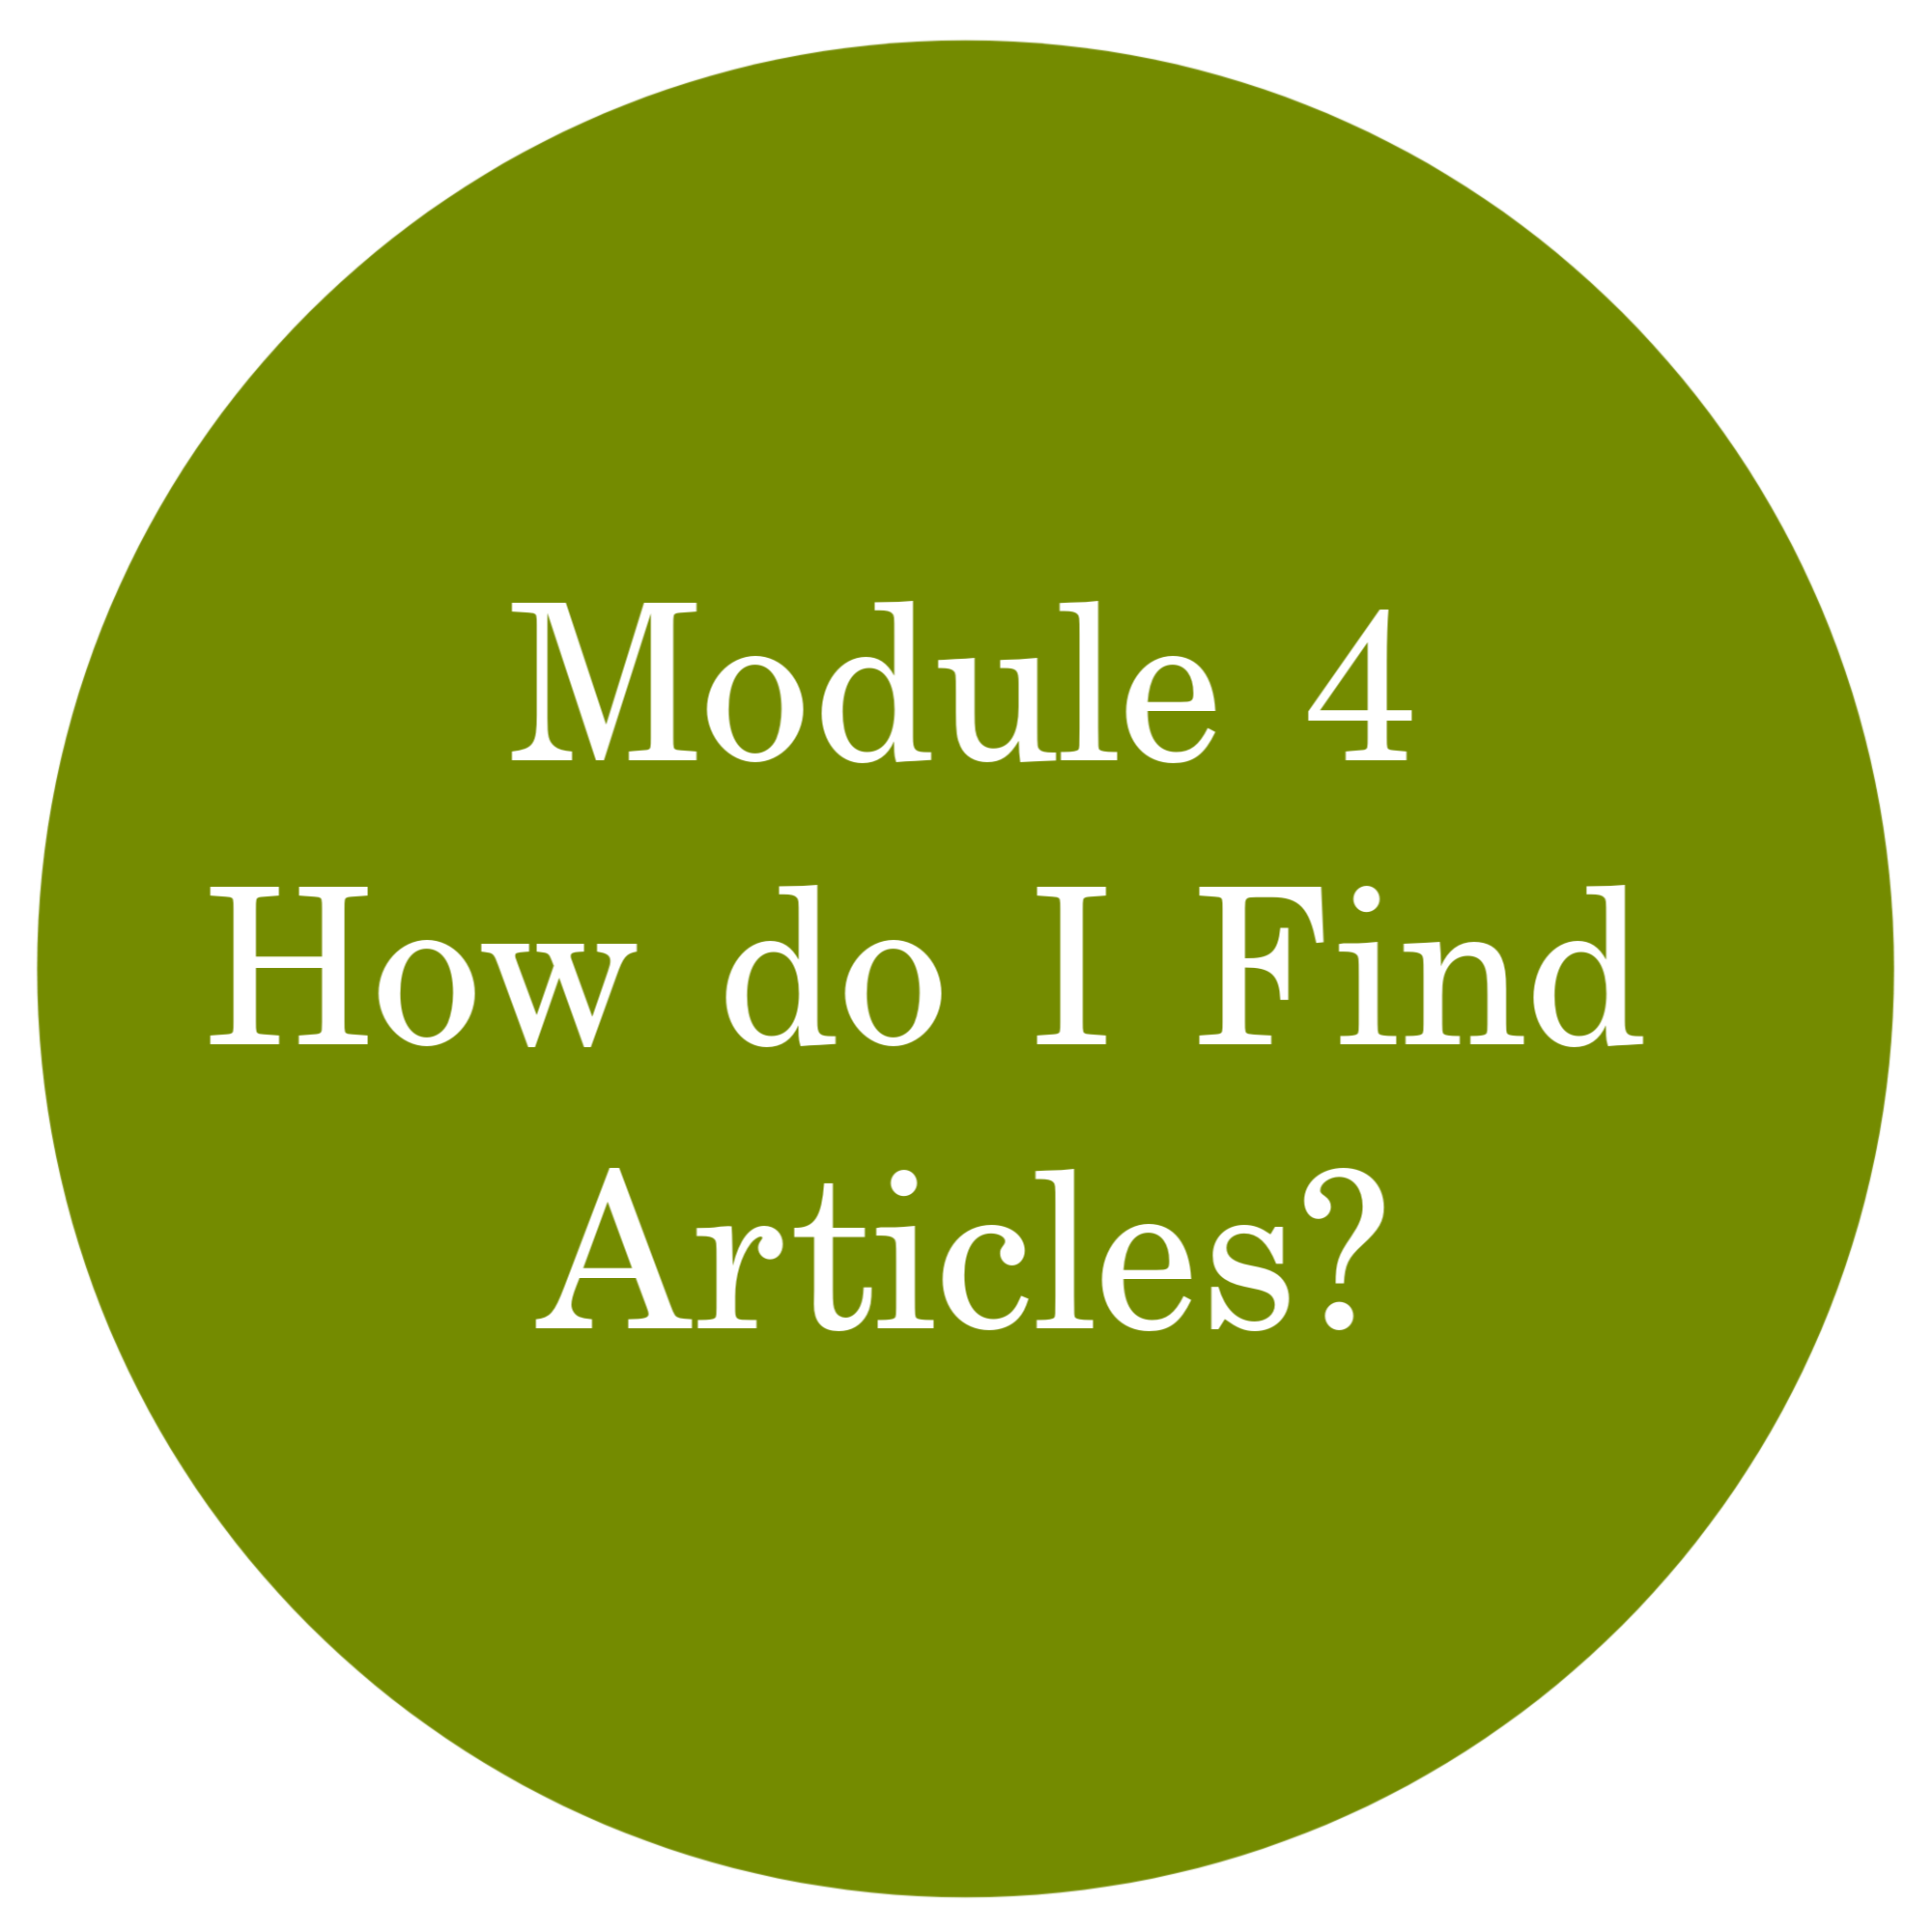 Module 4 How do I Find Articles?